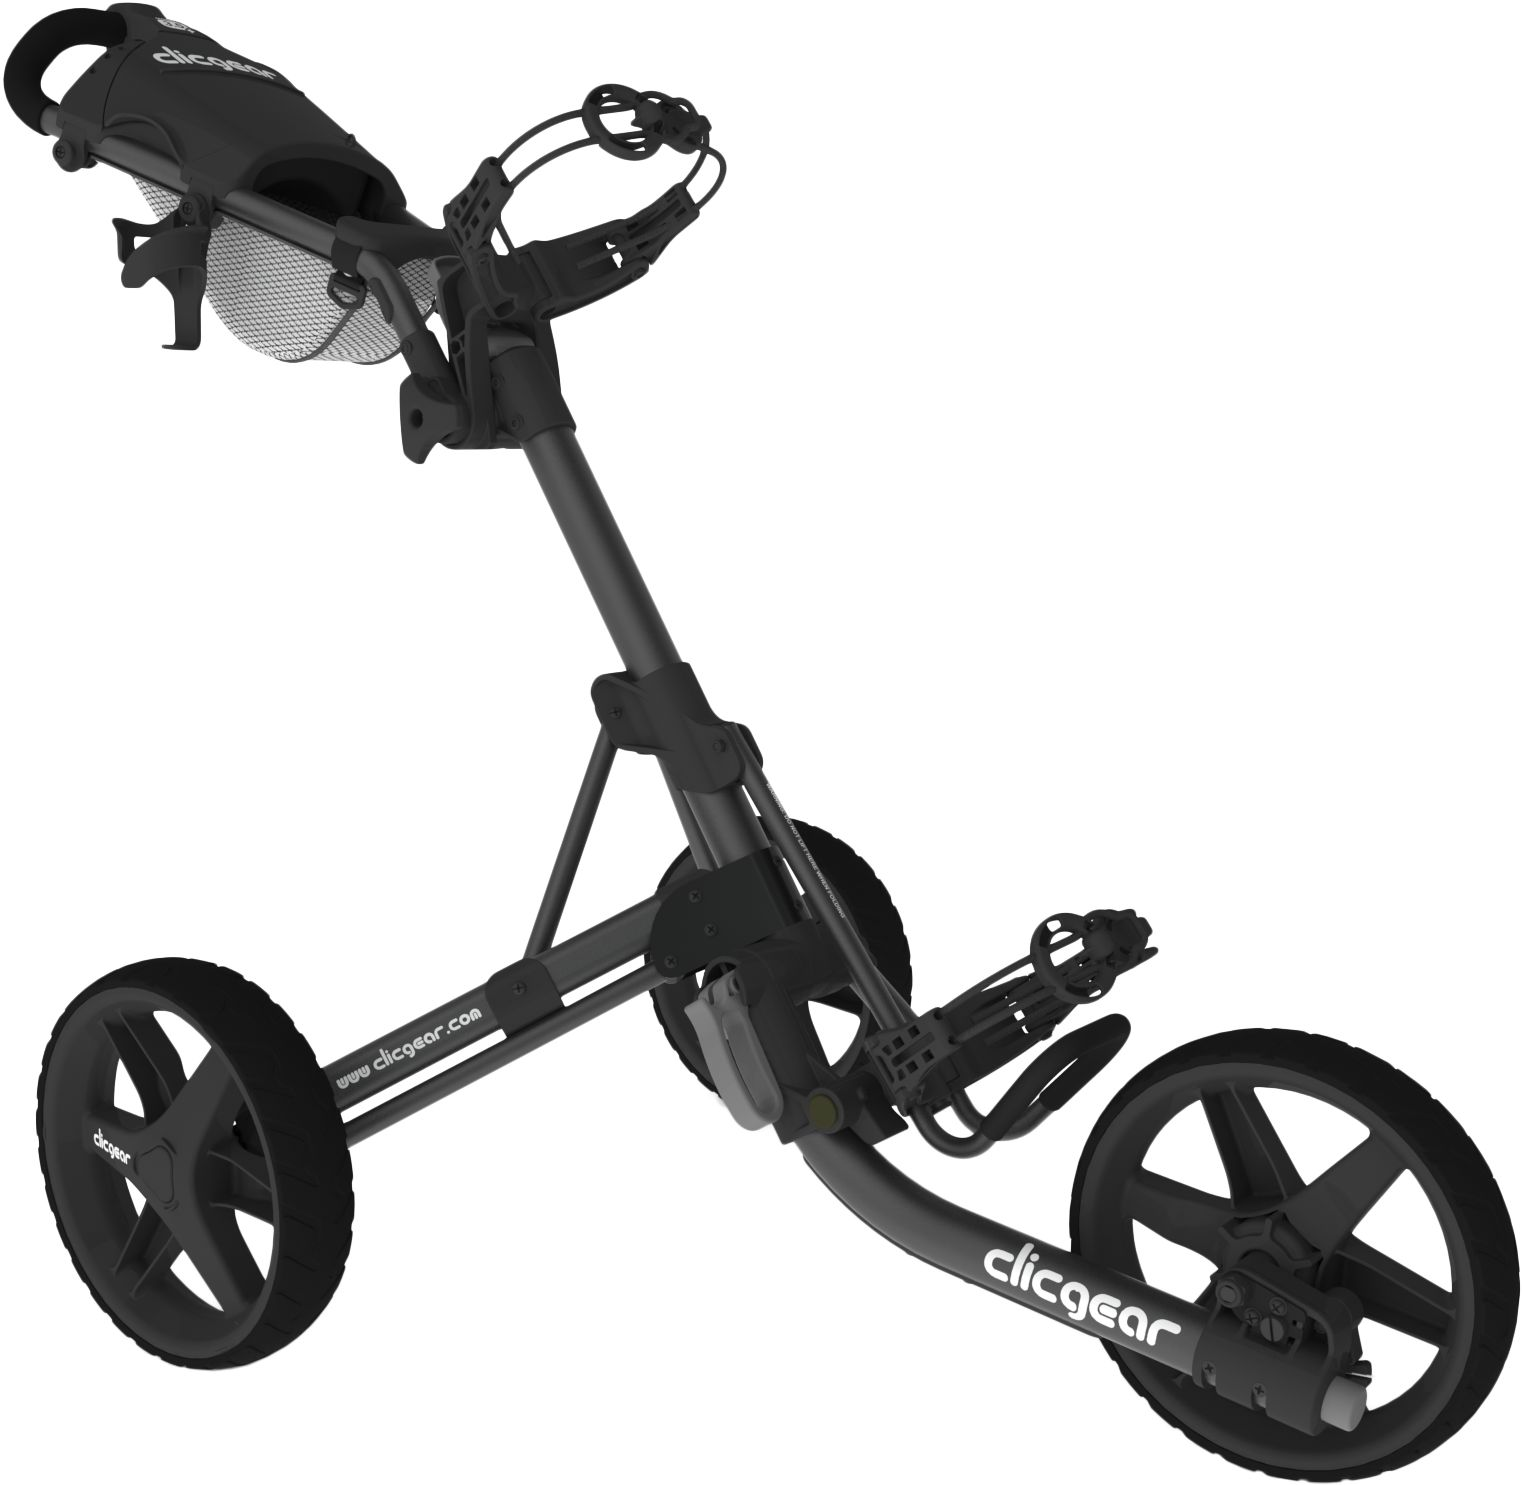 Clicgear 3.5+ Push Cart | 'S Sporting Goods on airplane in-flight, airplane stopping, airplane sizing, airplane dimensions, airplane food, airplane design, airplane in the sky, airplane at airport, airplane type, airplane opening, airplane lifting, airplane door, airplane on ground, airplane marshalling, airplane drag, airplane water, airplane transportation, airplane size, airplane cabin, airplane parts diagram,